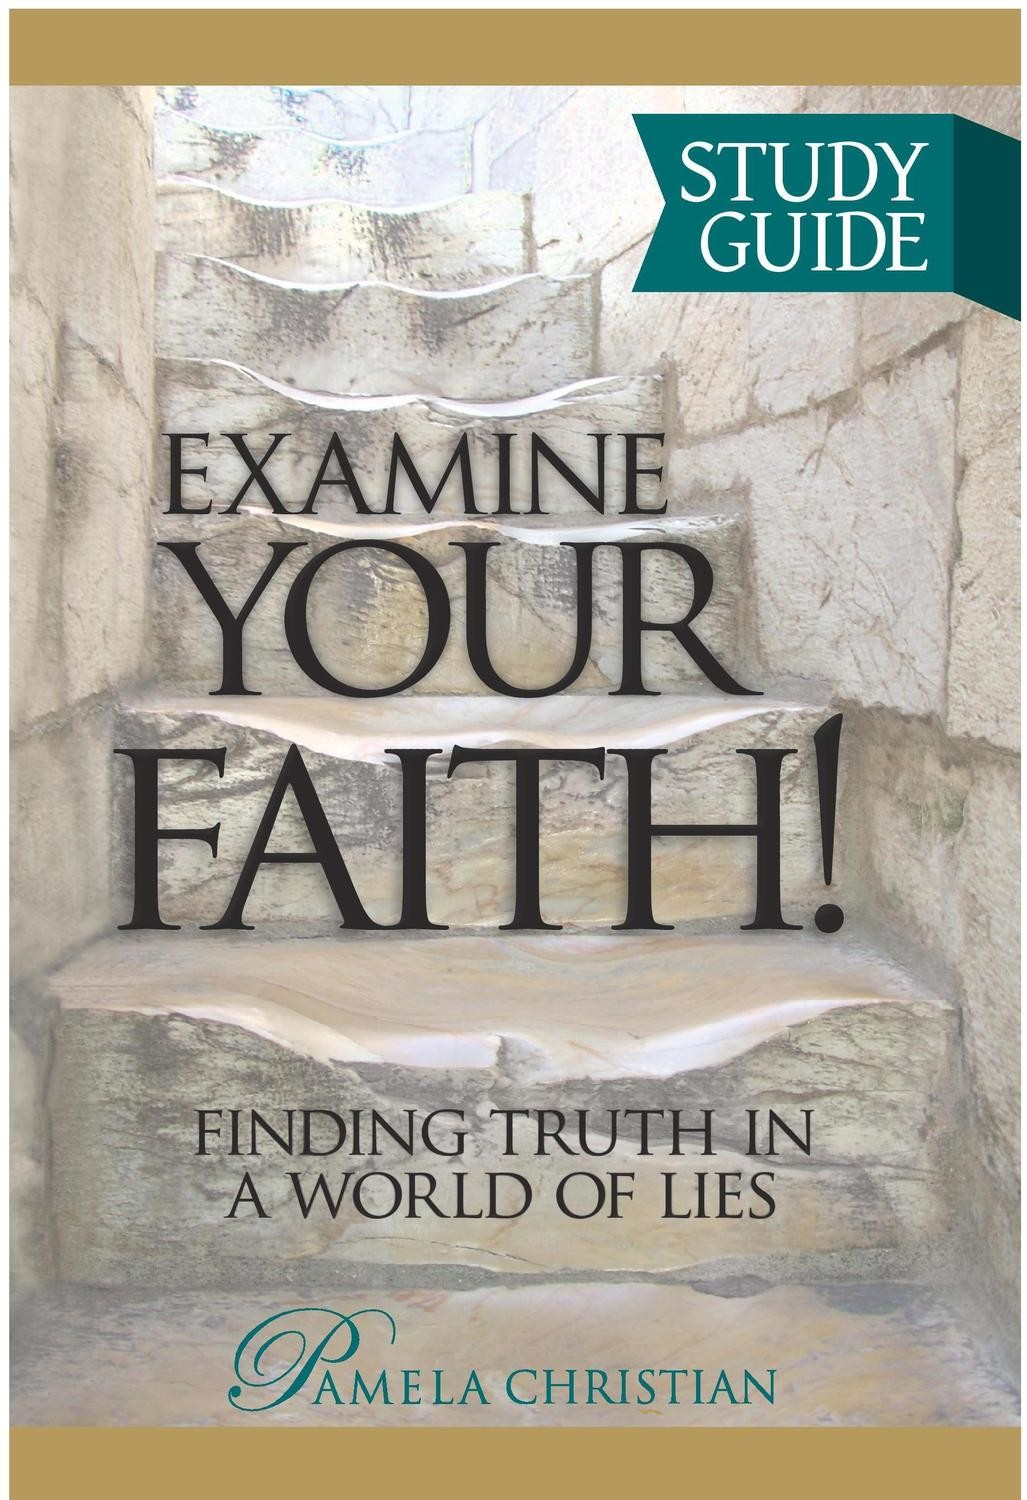 Examine Your Faith! Finding Truth in a World of Lies Study Guide